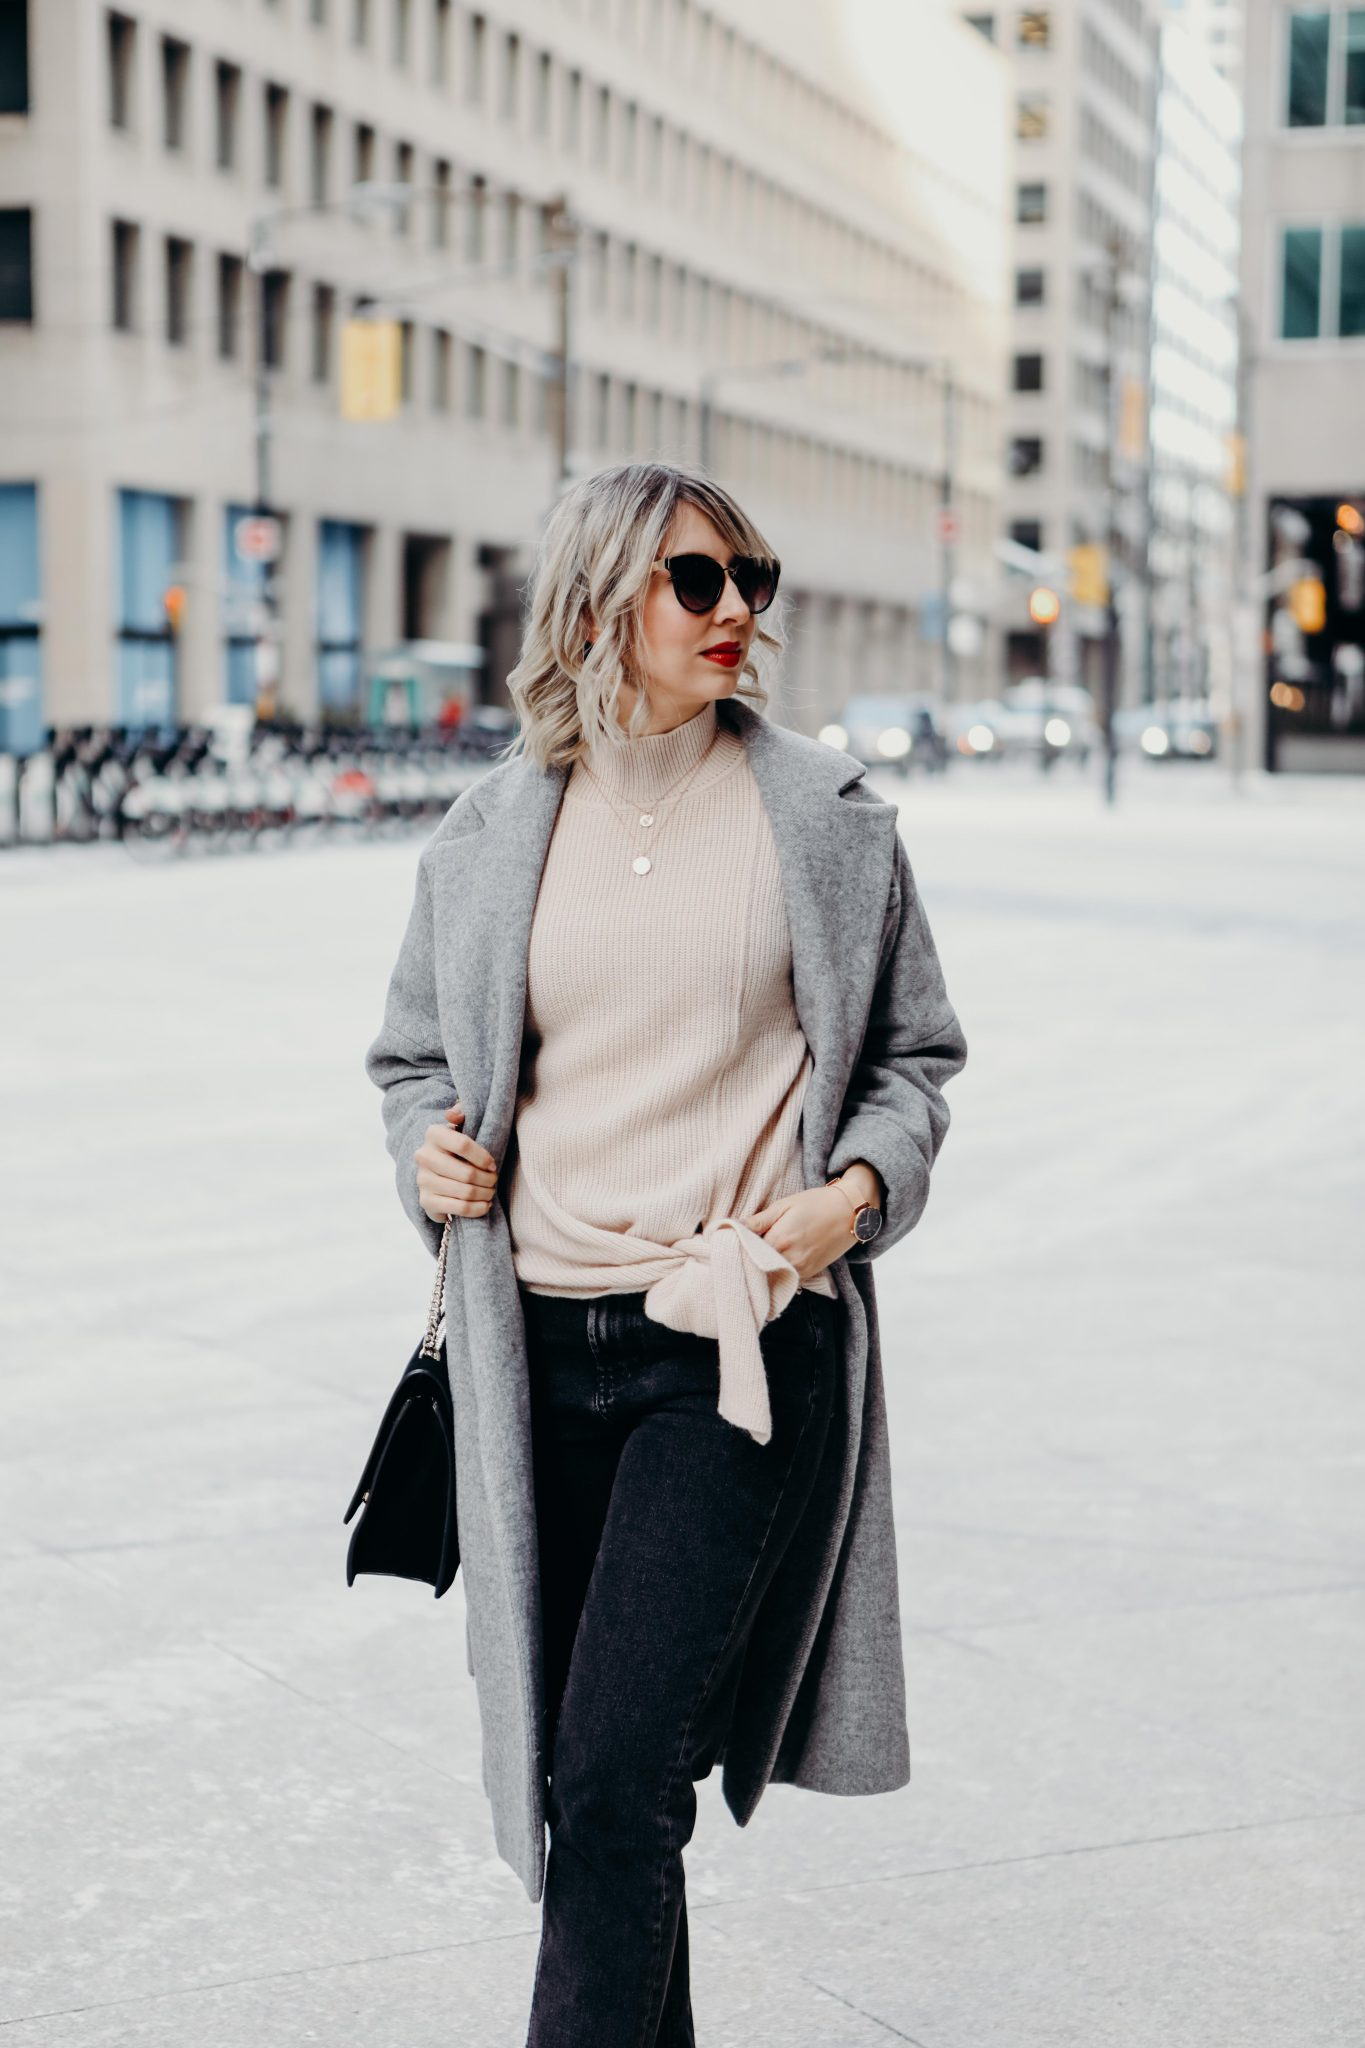 long coat style in the city (1 of 7)